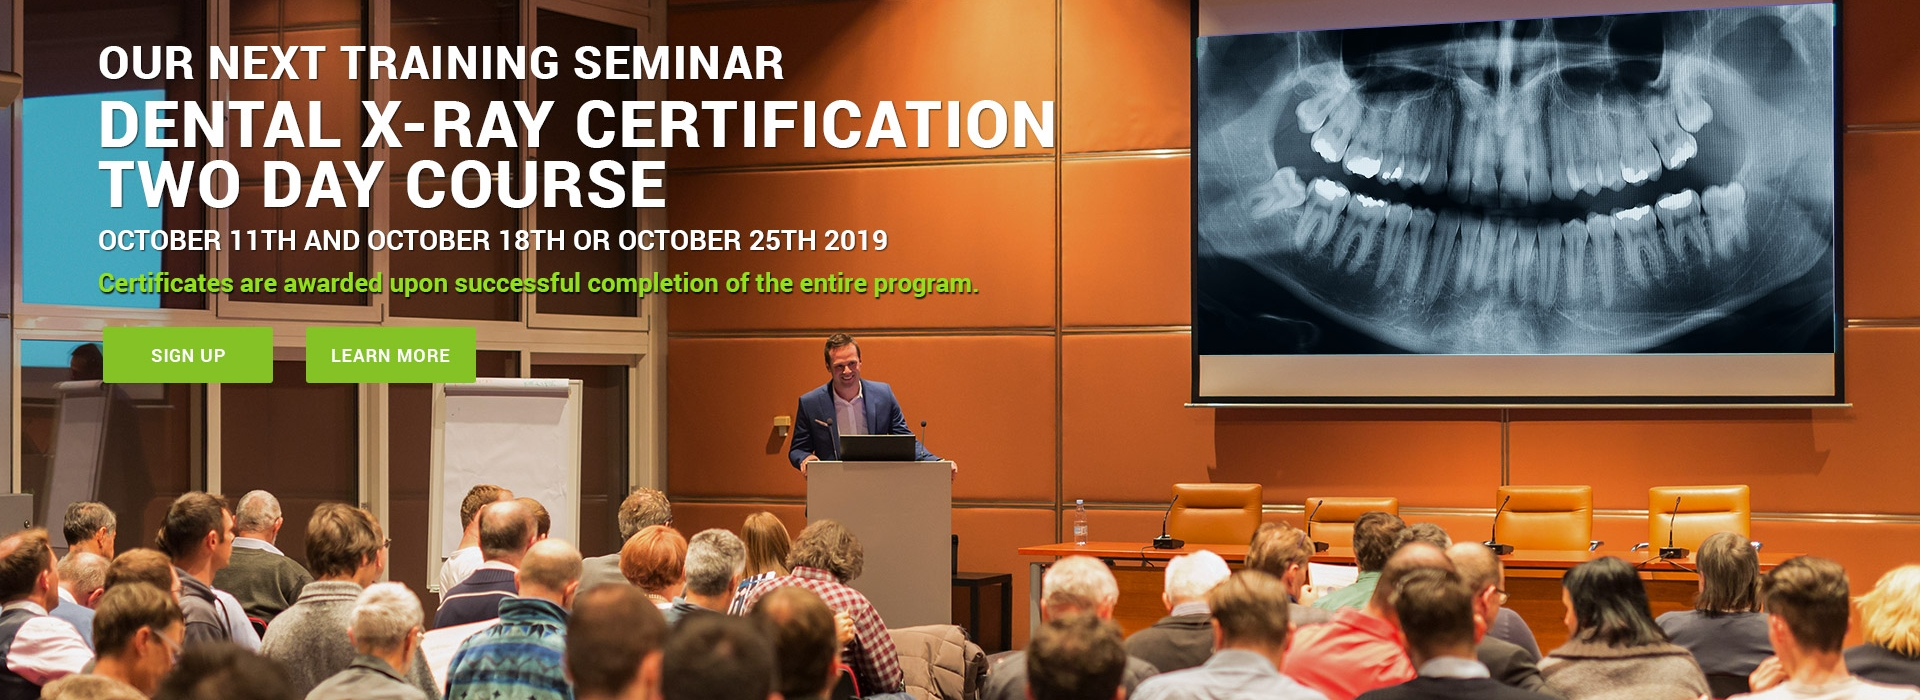 Dental X-Ray Certification Two Day Course